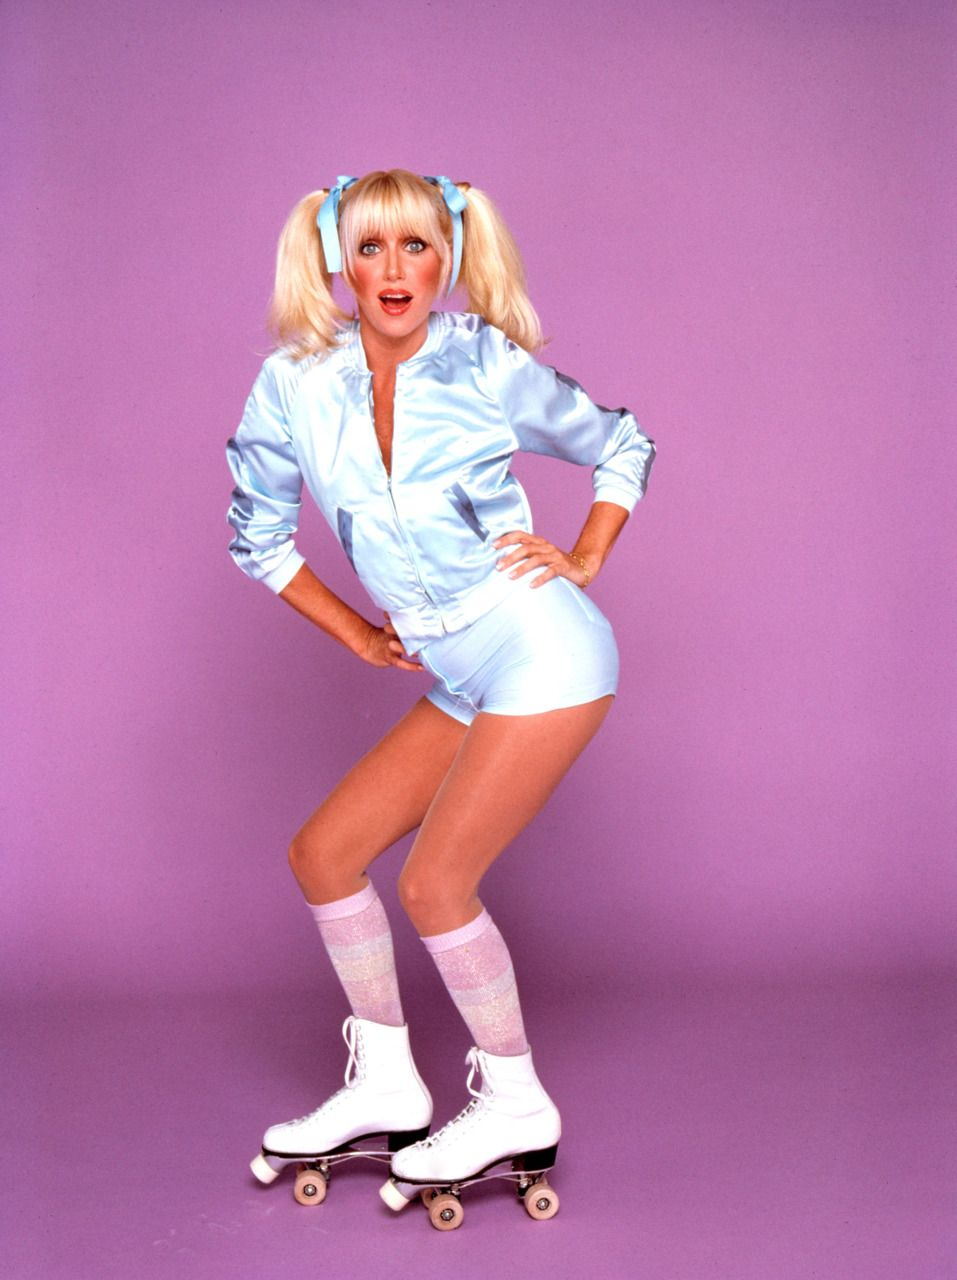 Legs suzanne somers